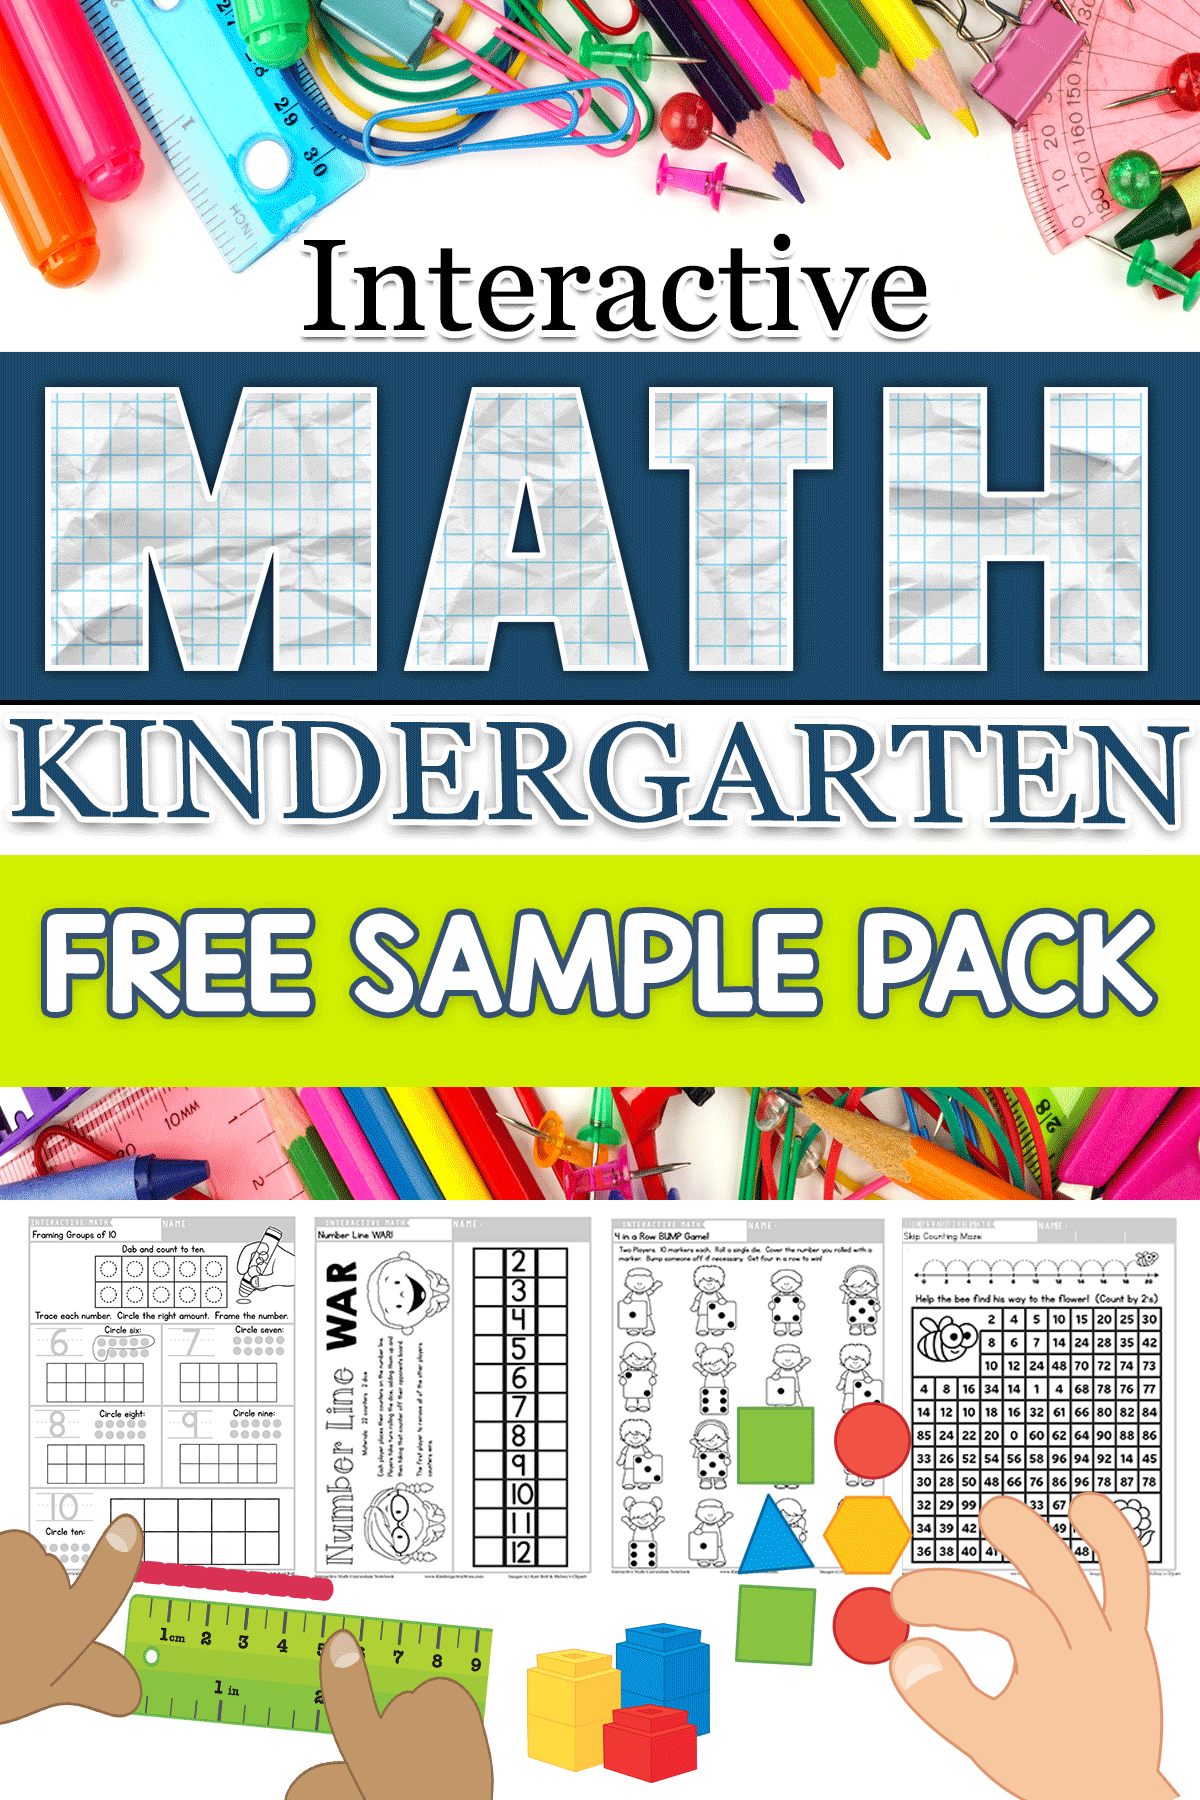 Download This FREE SAMPLE PACK With Five Engaging Math Lessons And